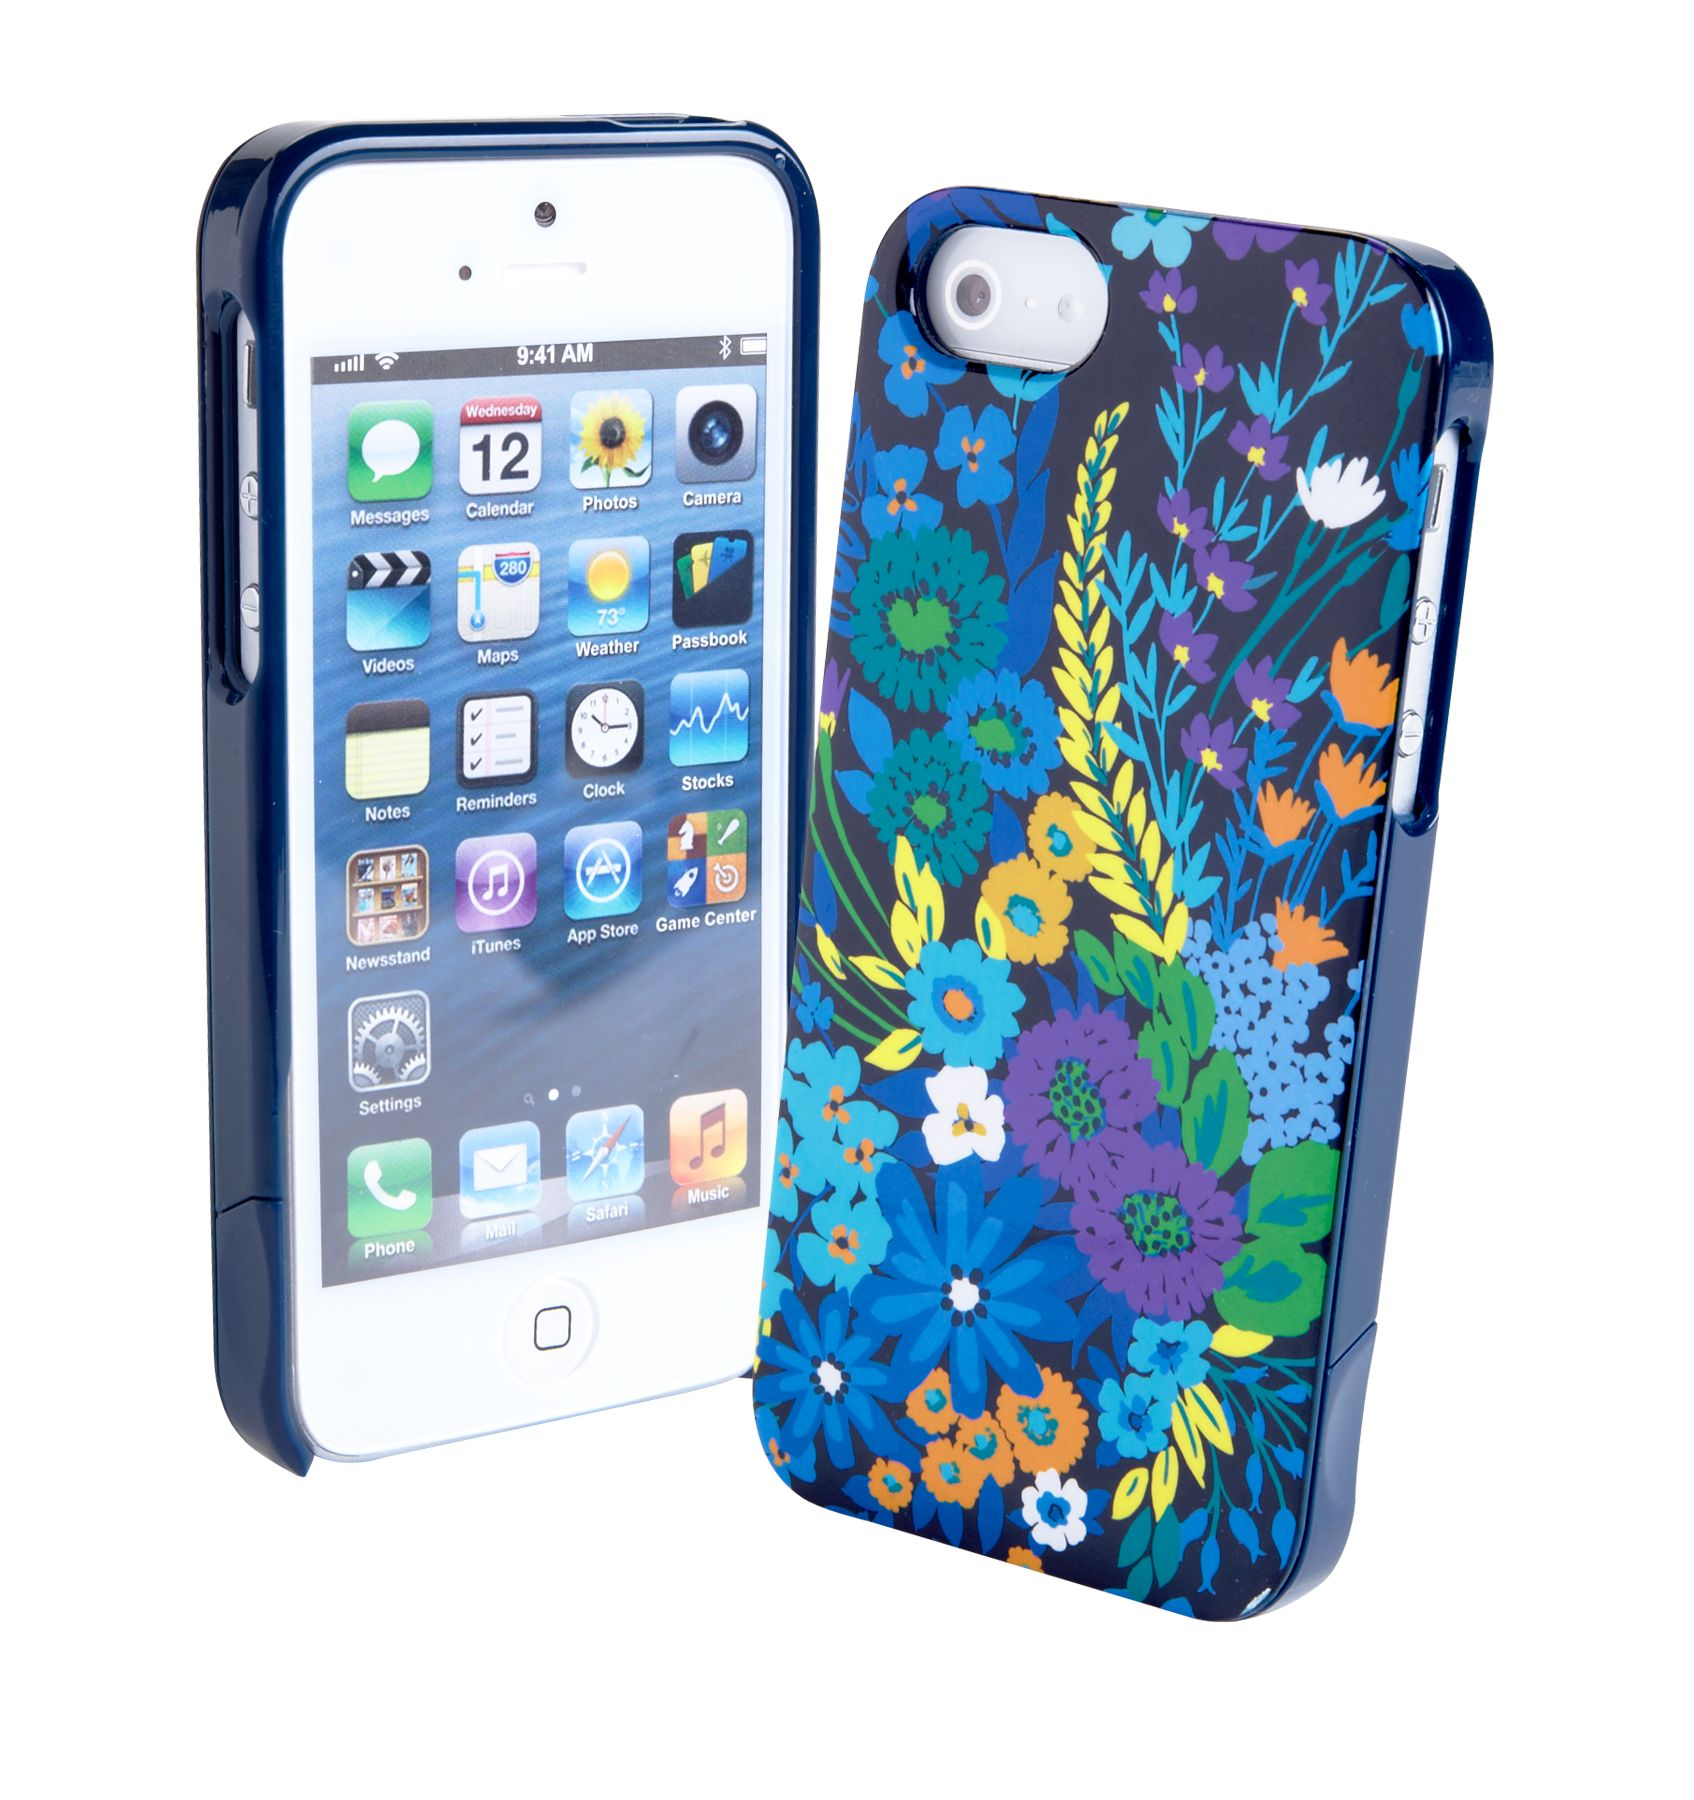 vera bradley iphone 5 case vera bradley slide frame phone for iphone 5 ebay 9066